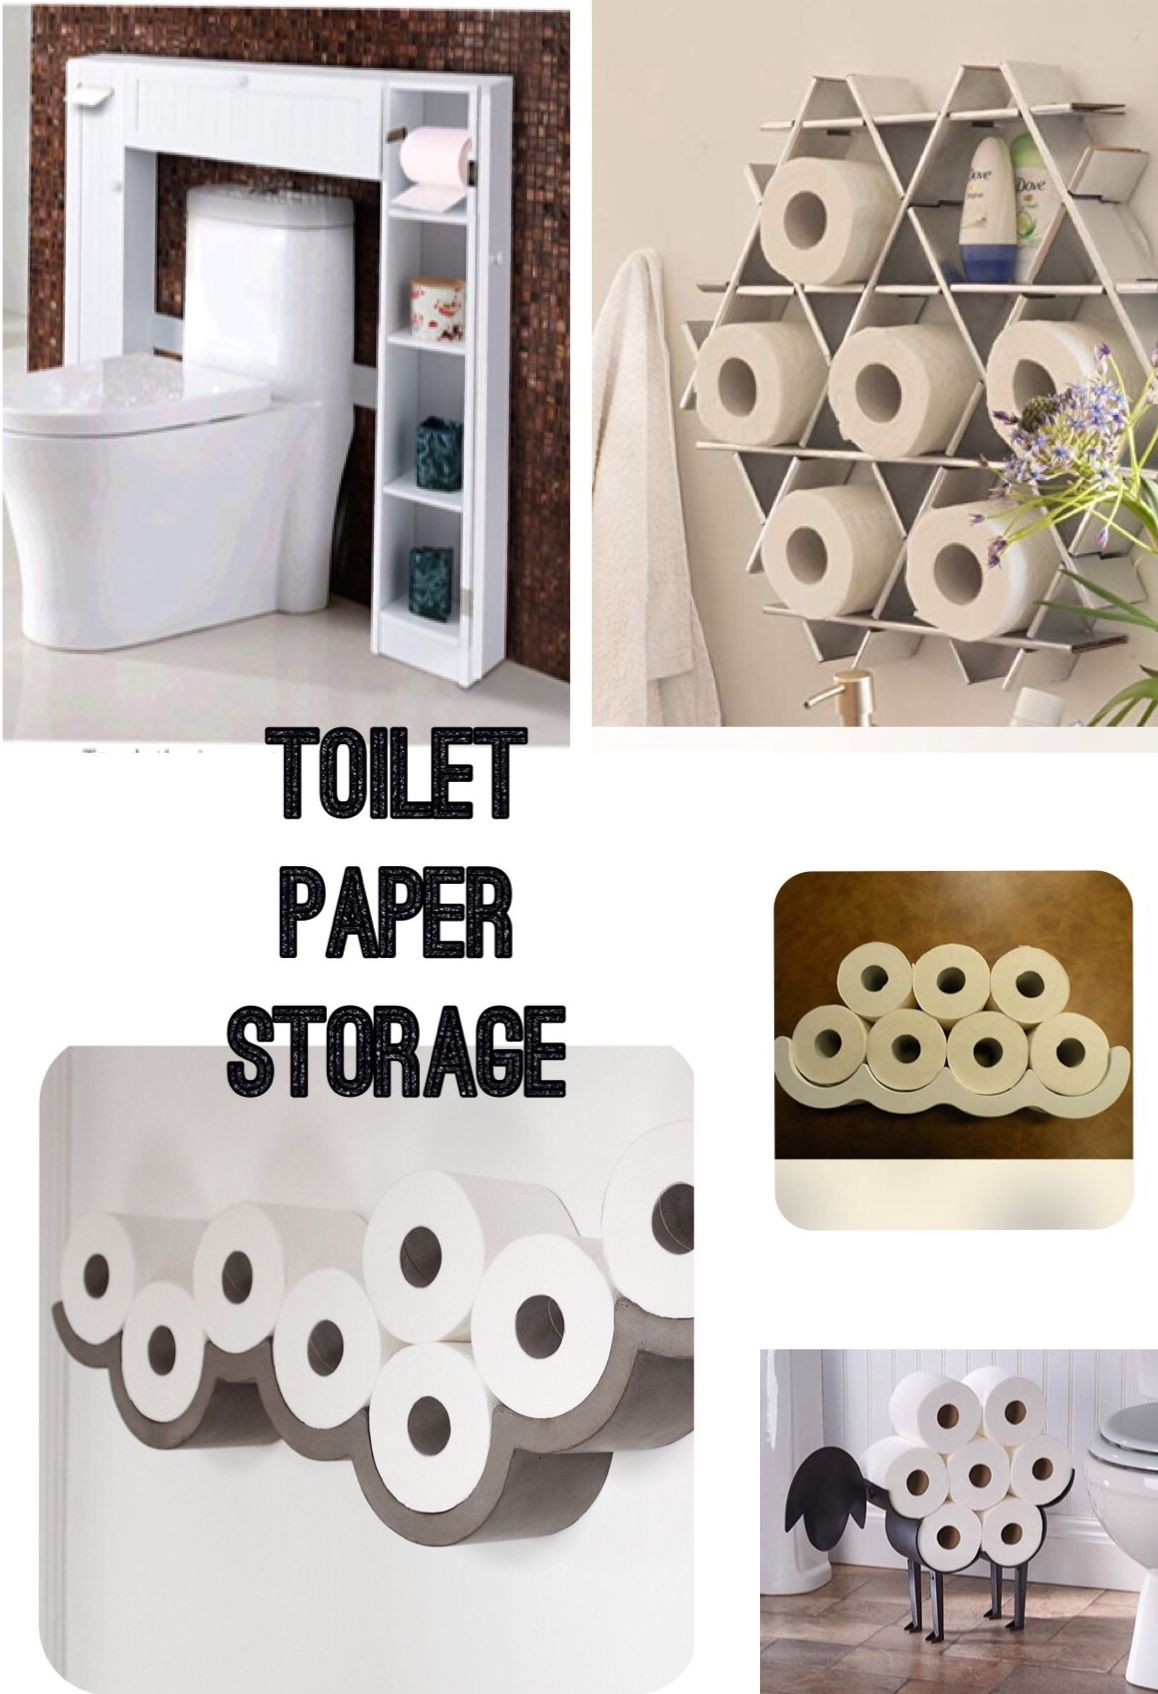 Toilet Paper Storage Ideas To Organise Your Bathroom Toilet Roll Cloud Holder And Sheep Toilet Roll H Toilet Paper Storage Bathroom Wall Storage Toilet Paper